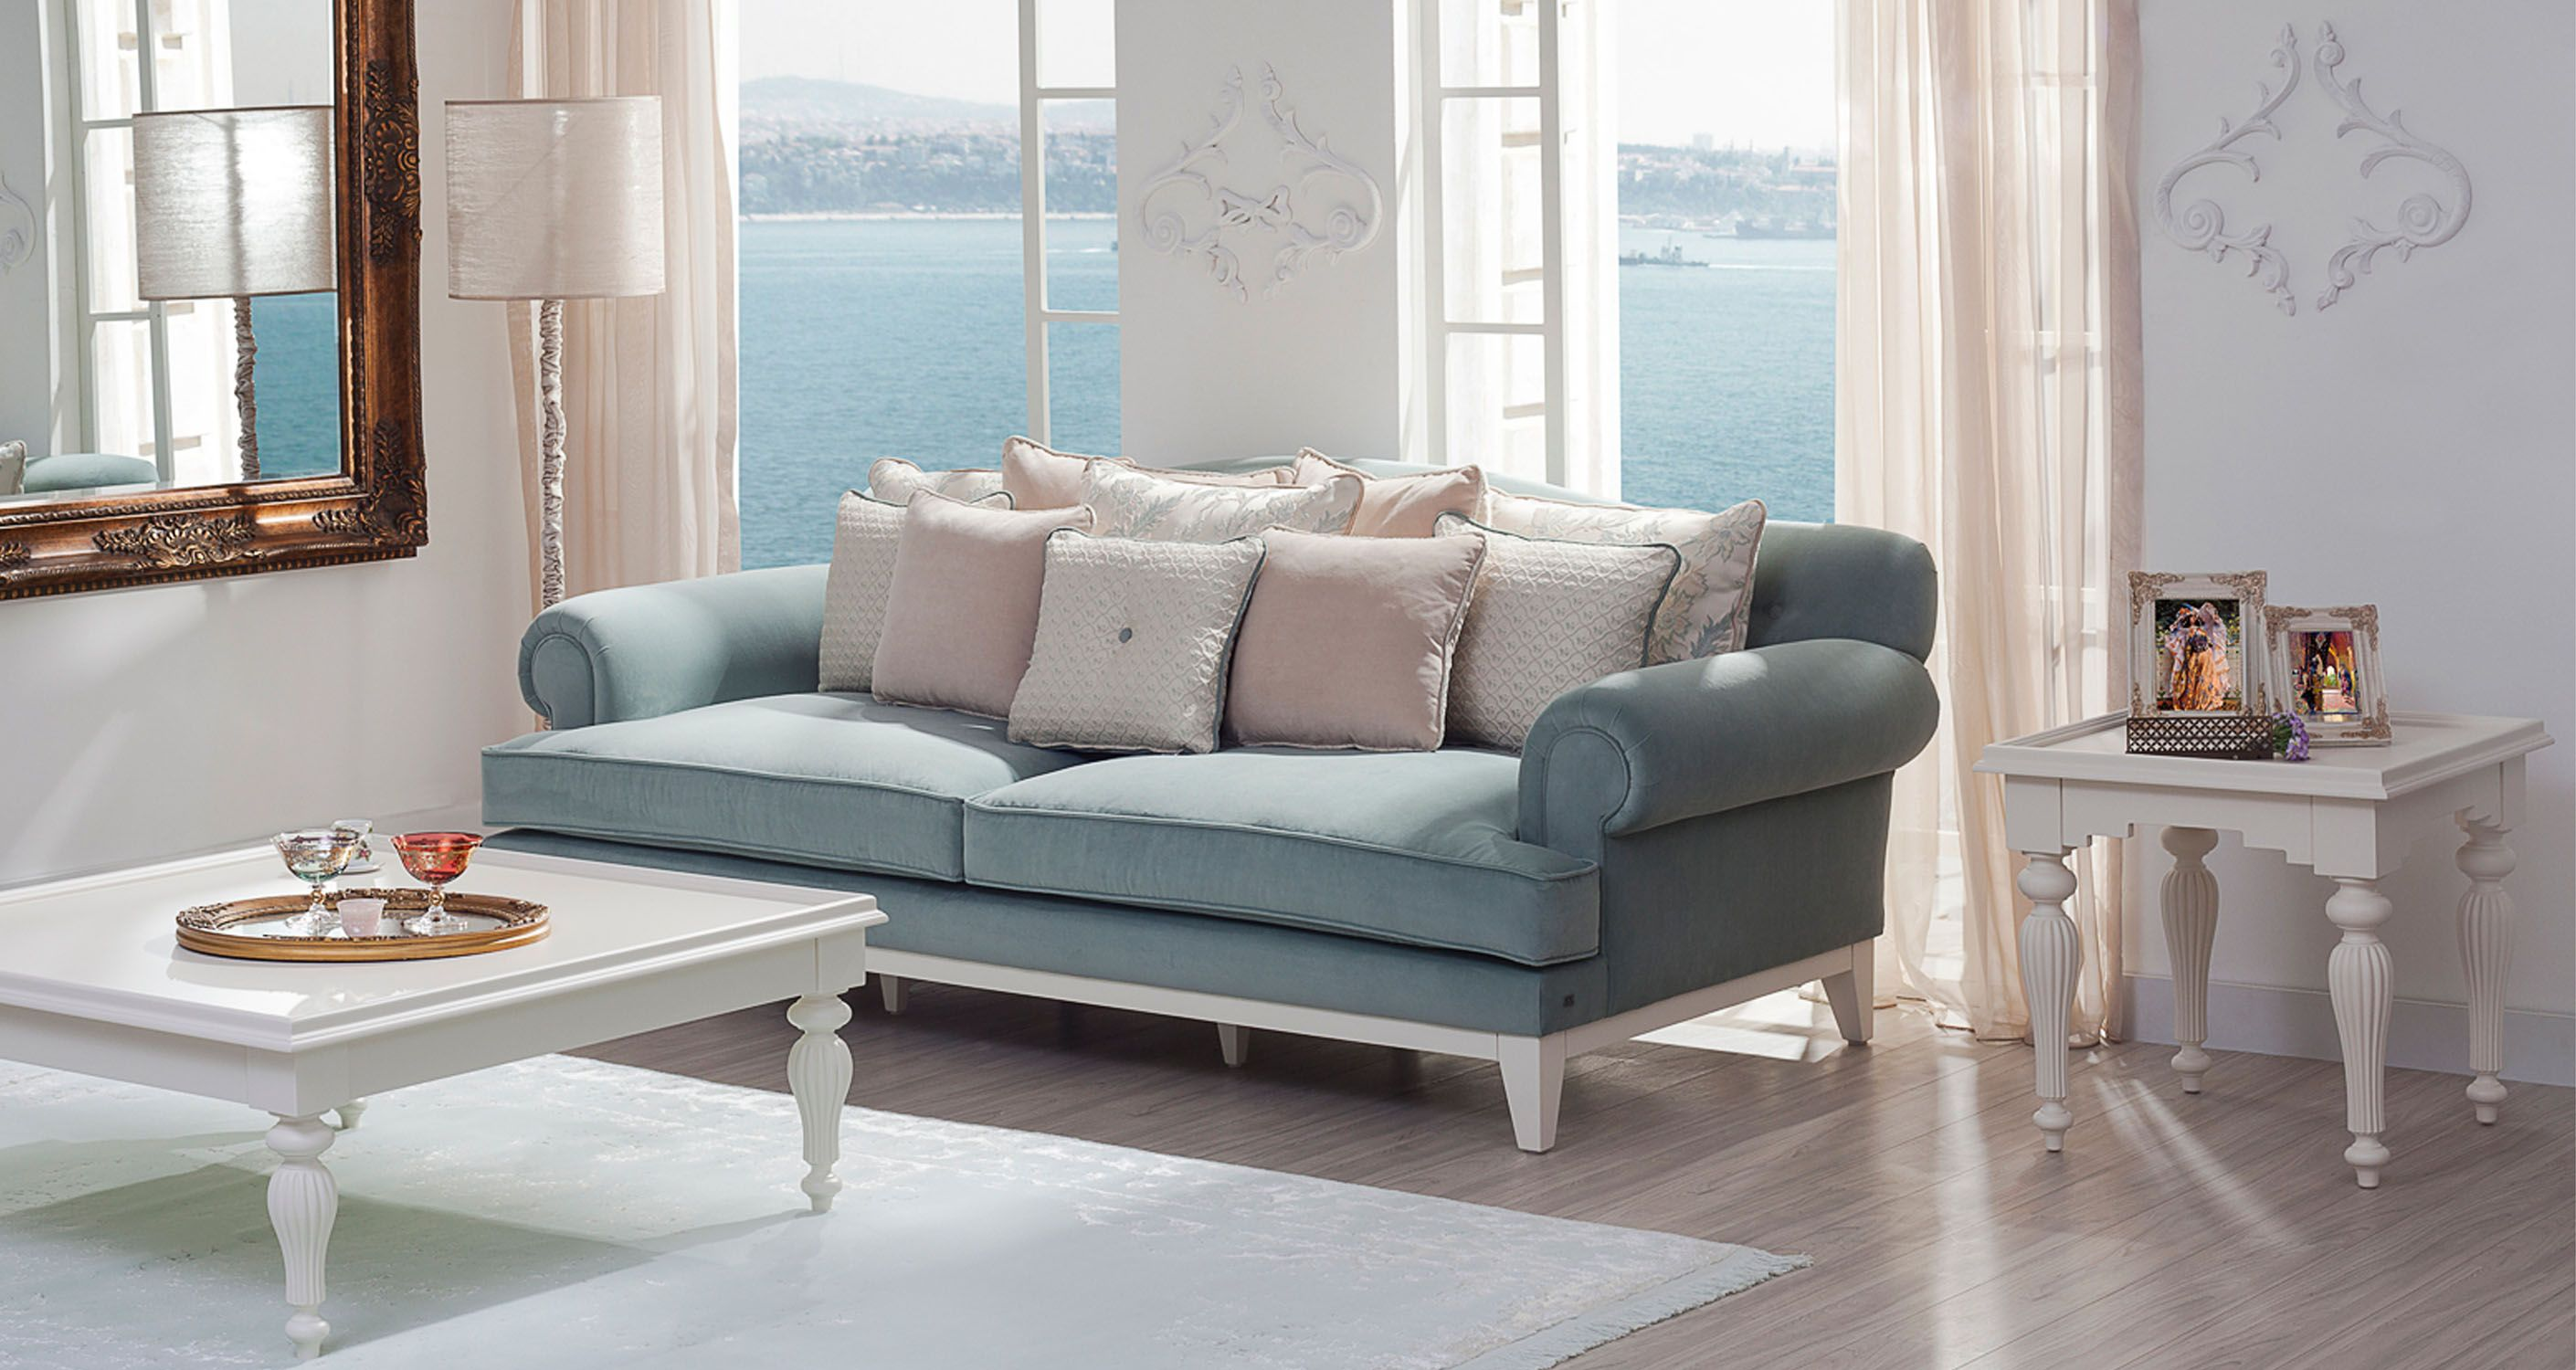 15 Great Seat Designs In My Favorites Mostbeautifulthings Mobilya Mobilya Fikirleri Ev Icin